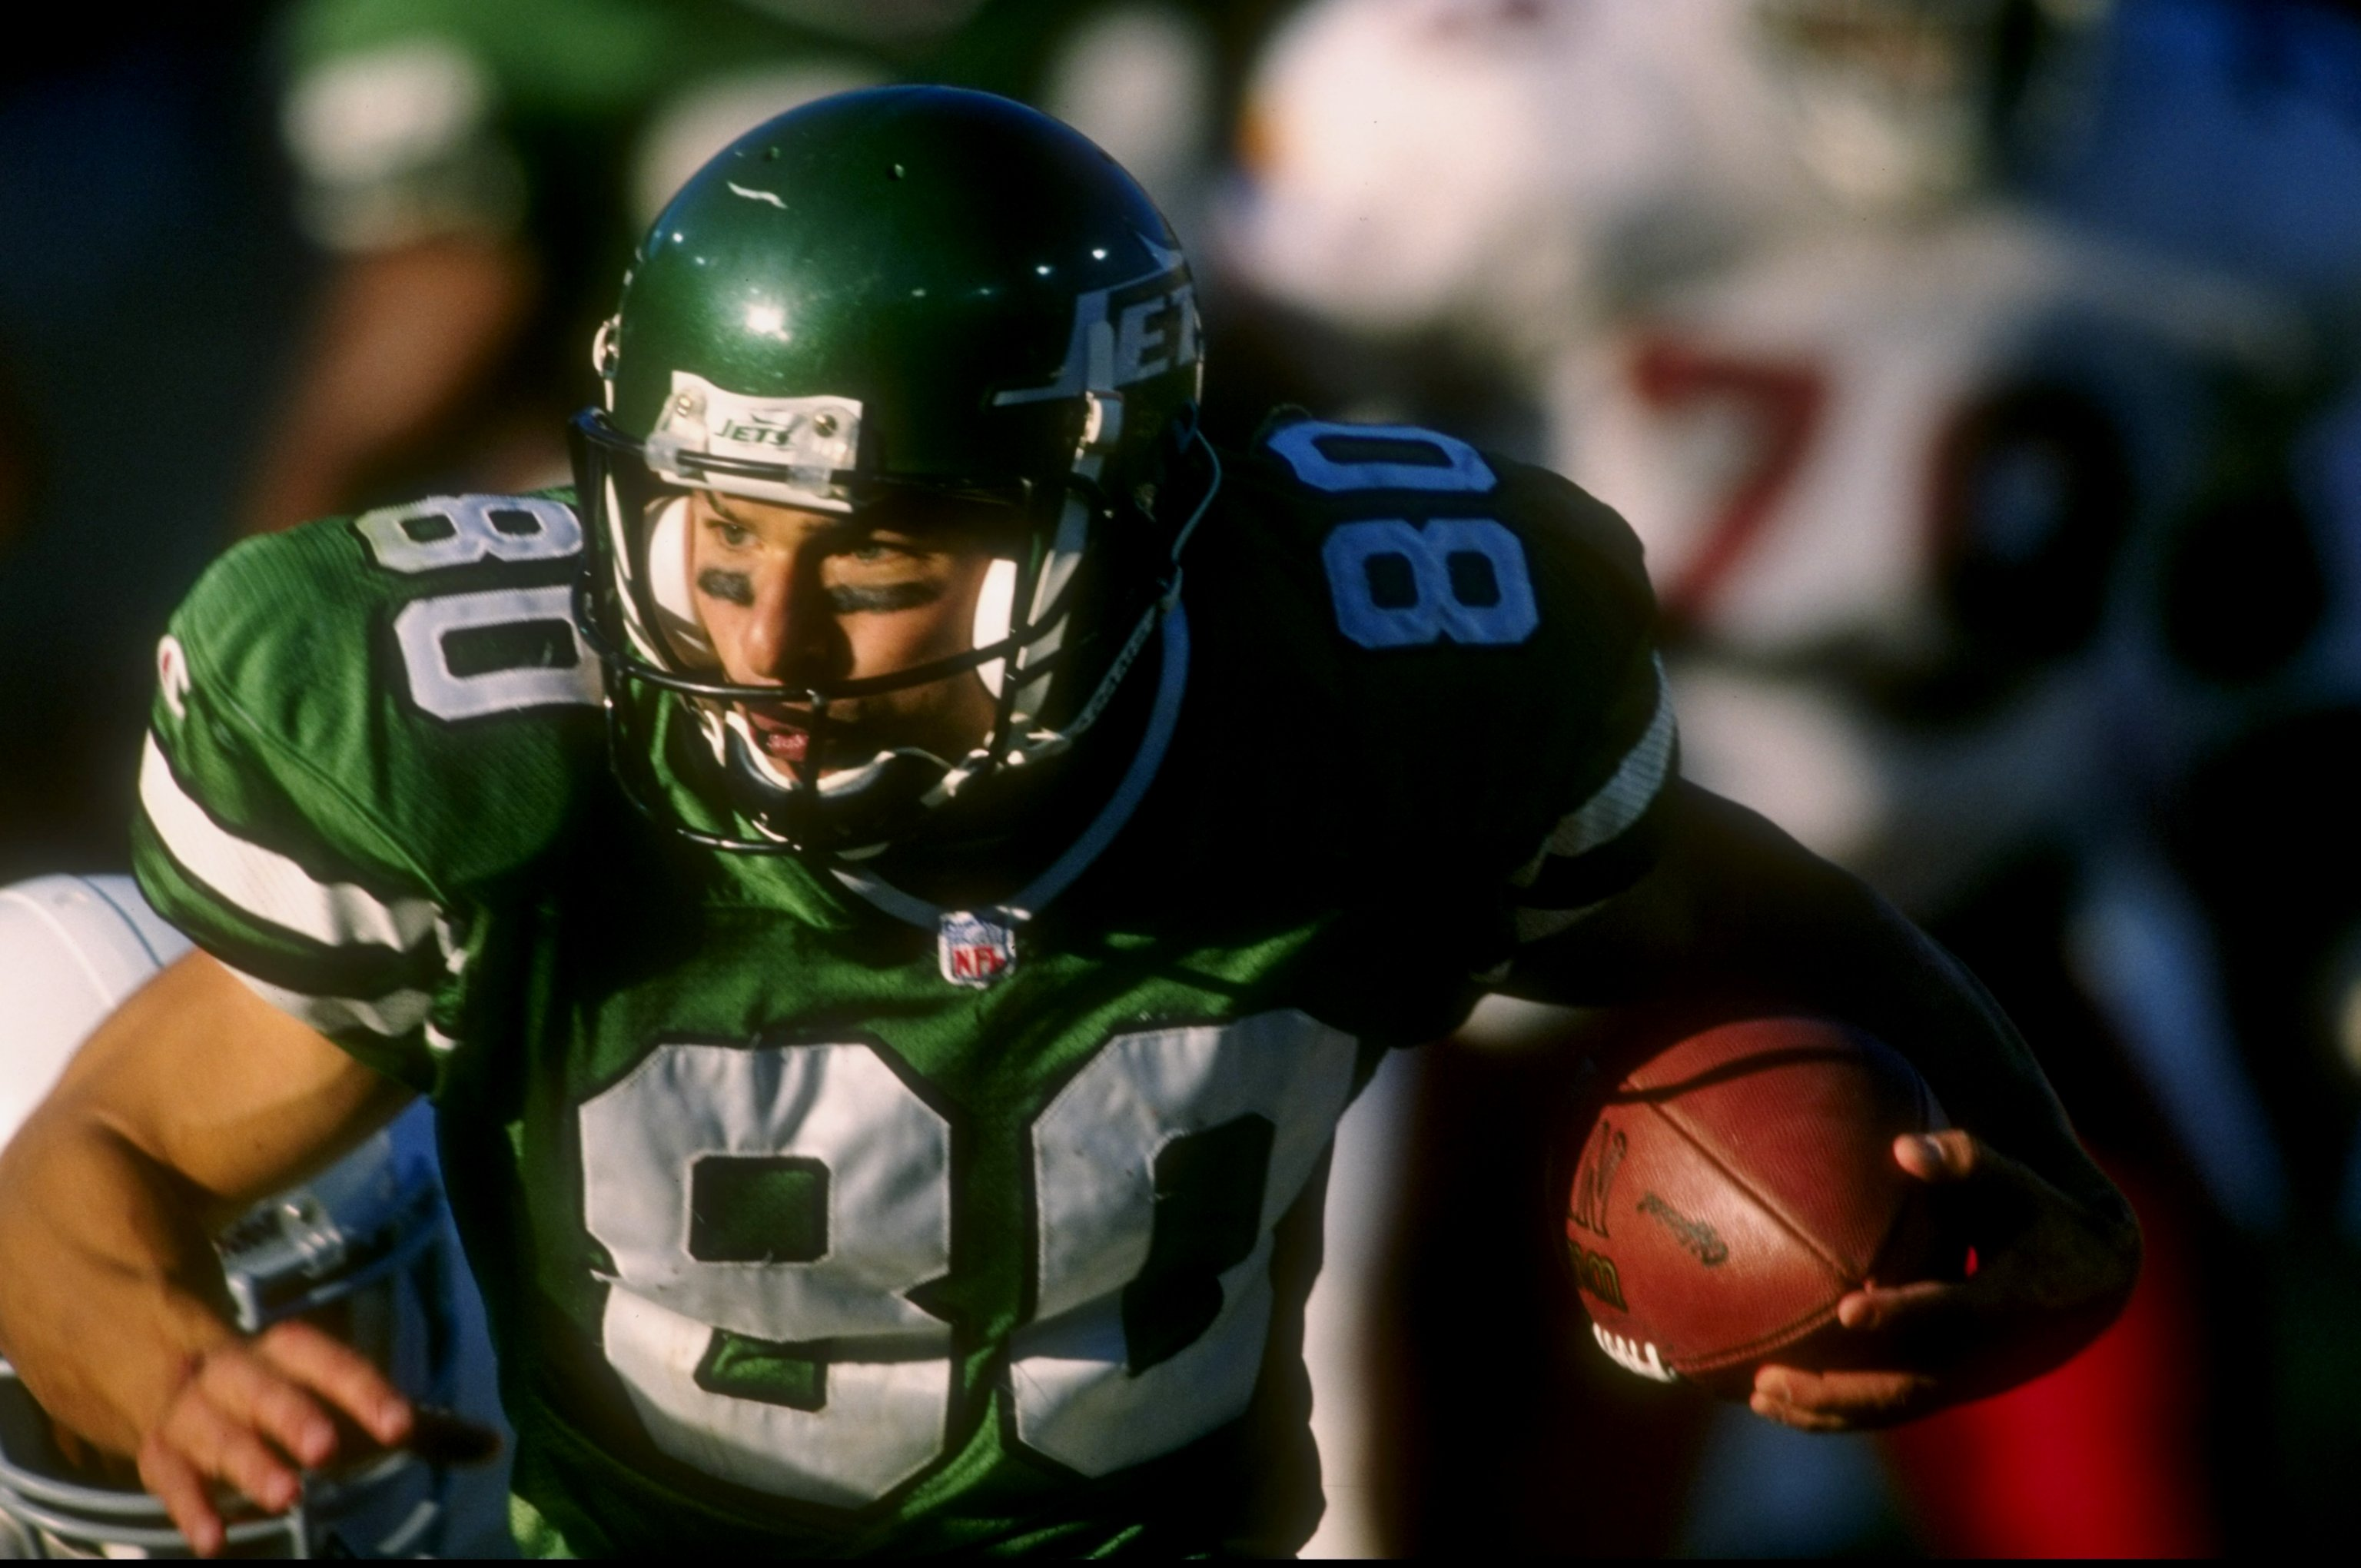 d9240e87e Flashback Friday  The  80s and  90s New York Jets Uniforms - Gang ...